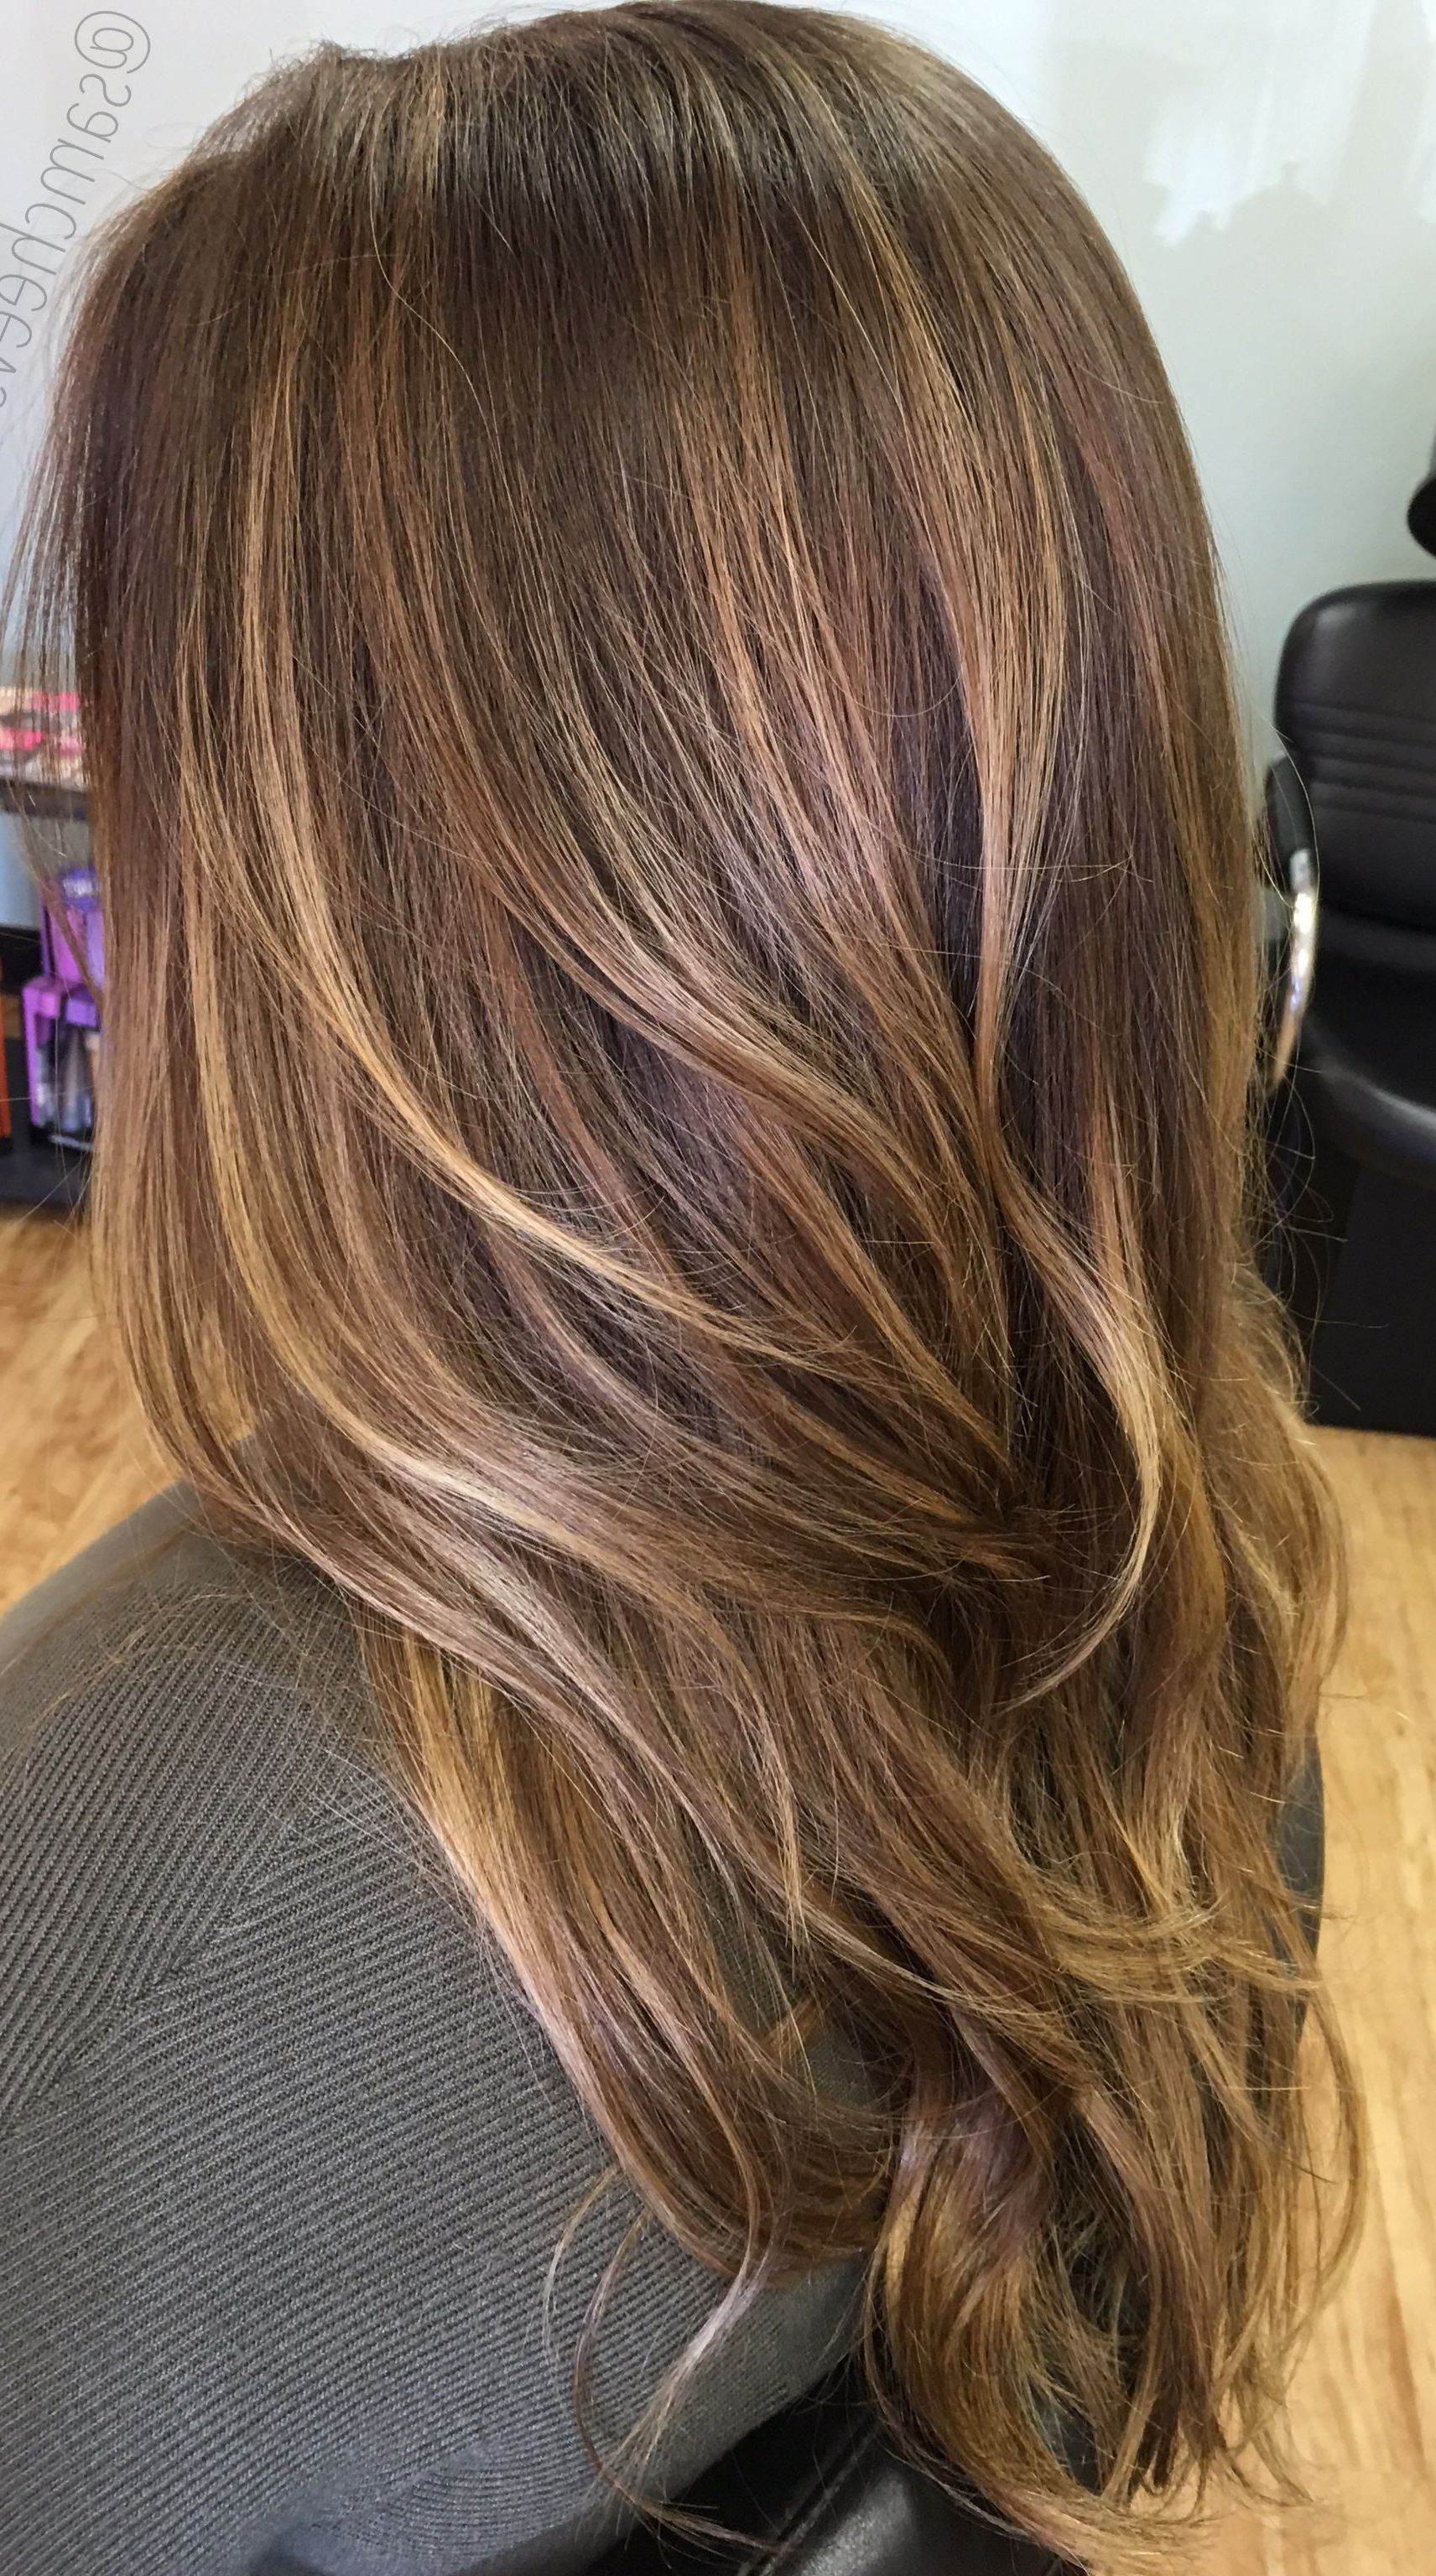 12 Gorgeous Balayage Hair Color Ideas for Blonde Short Straight ...